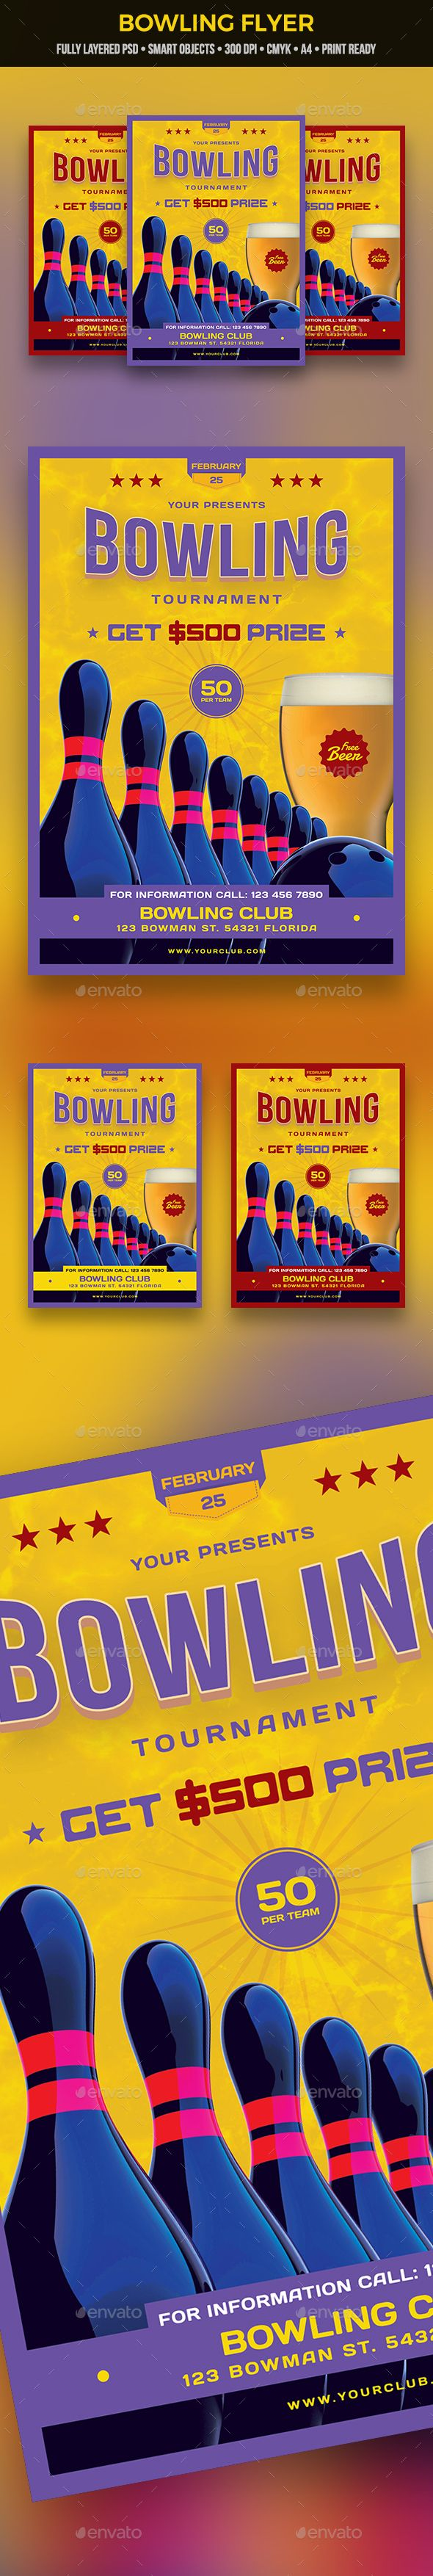 Bowling Flyer  Photoshop And Flyer Template